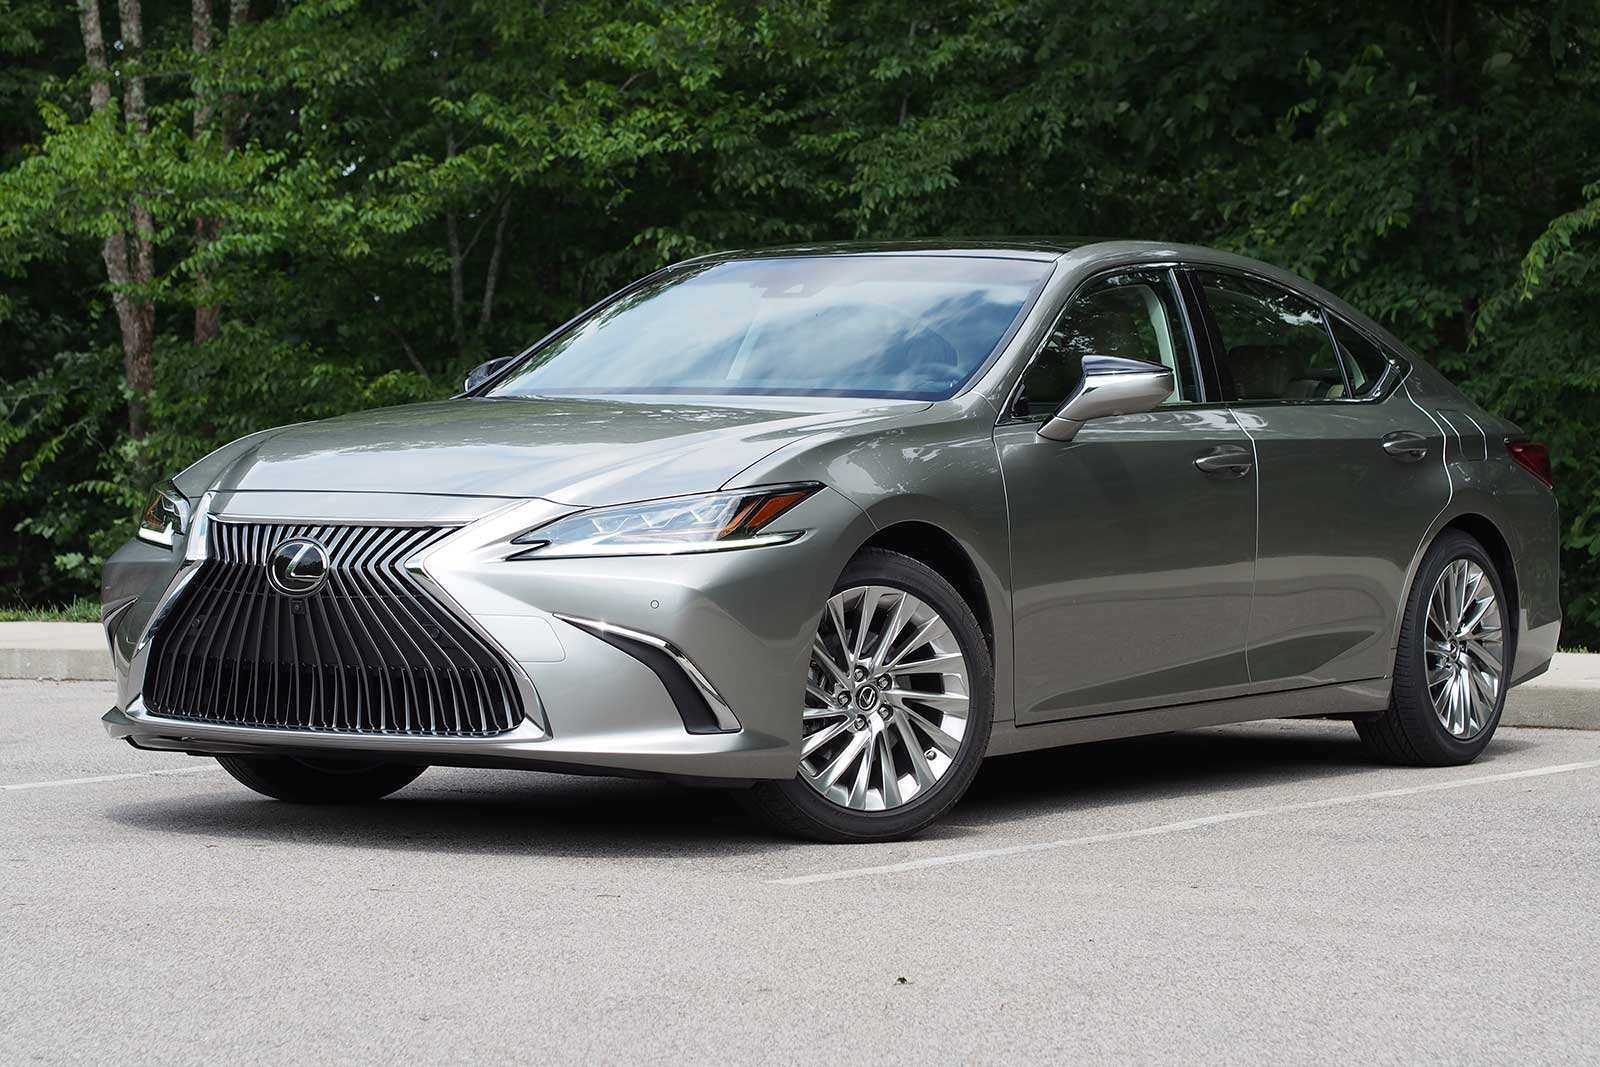 78 Great Es 350 Lexus 2019 Review with Es 350 Lexus 2019